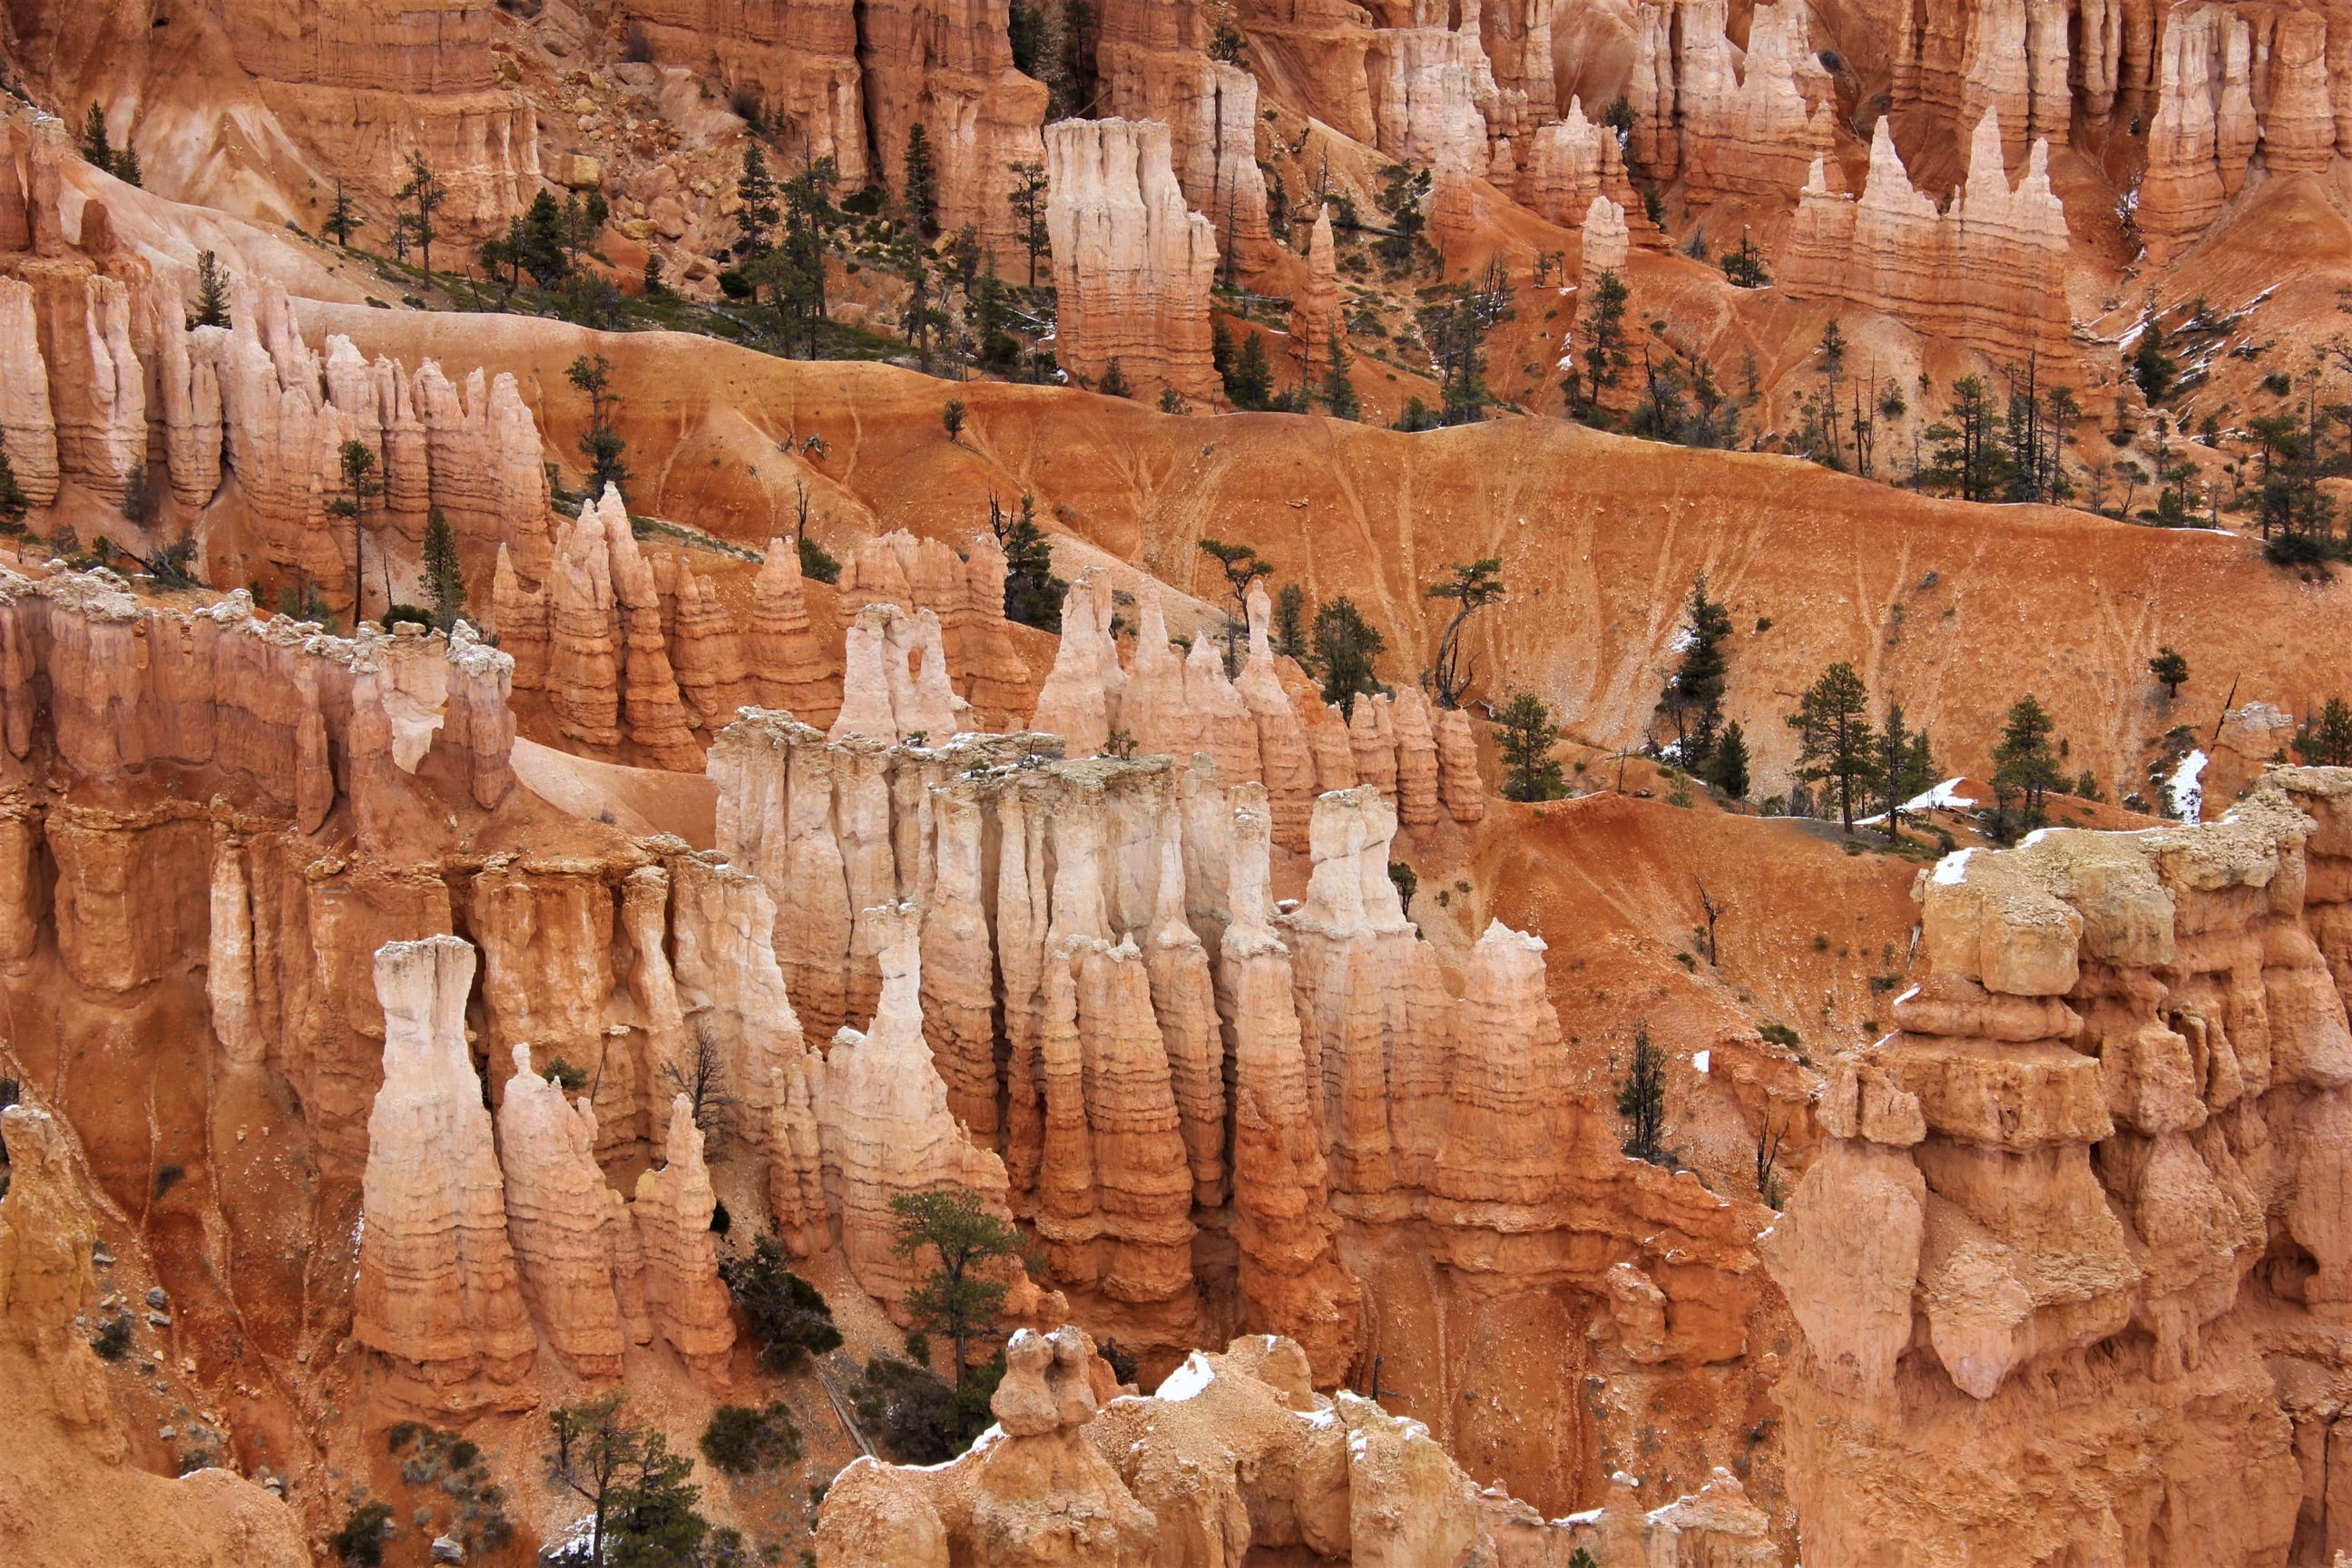 camera strap, camera wrist strap, sunglass straps, outdoor gear, camera equipment, hikes in bryce canyon, best hikes in bryce canyon, hiking bryce canyon, backpacking bryce canyon